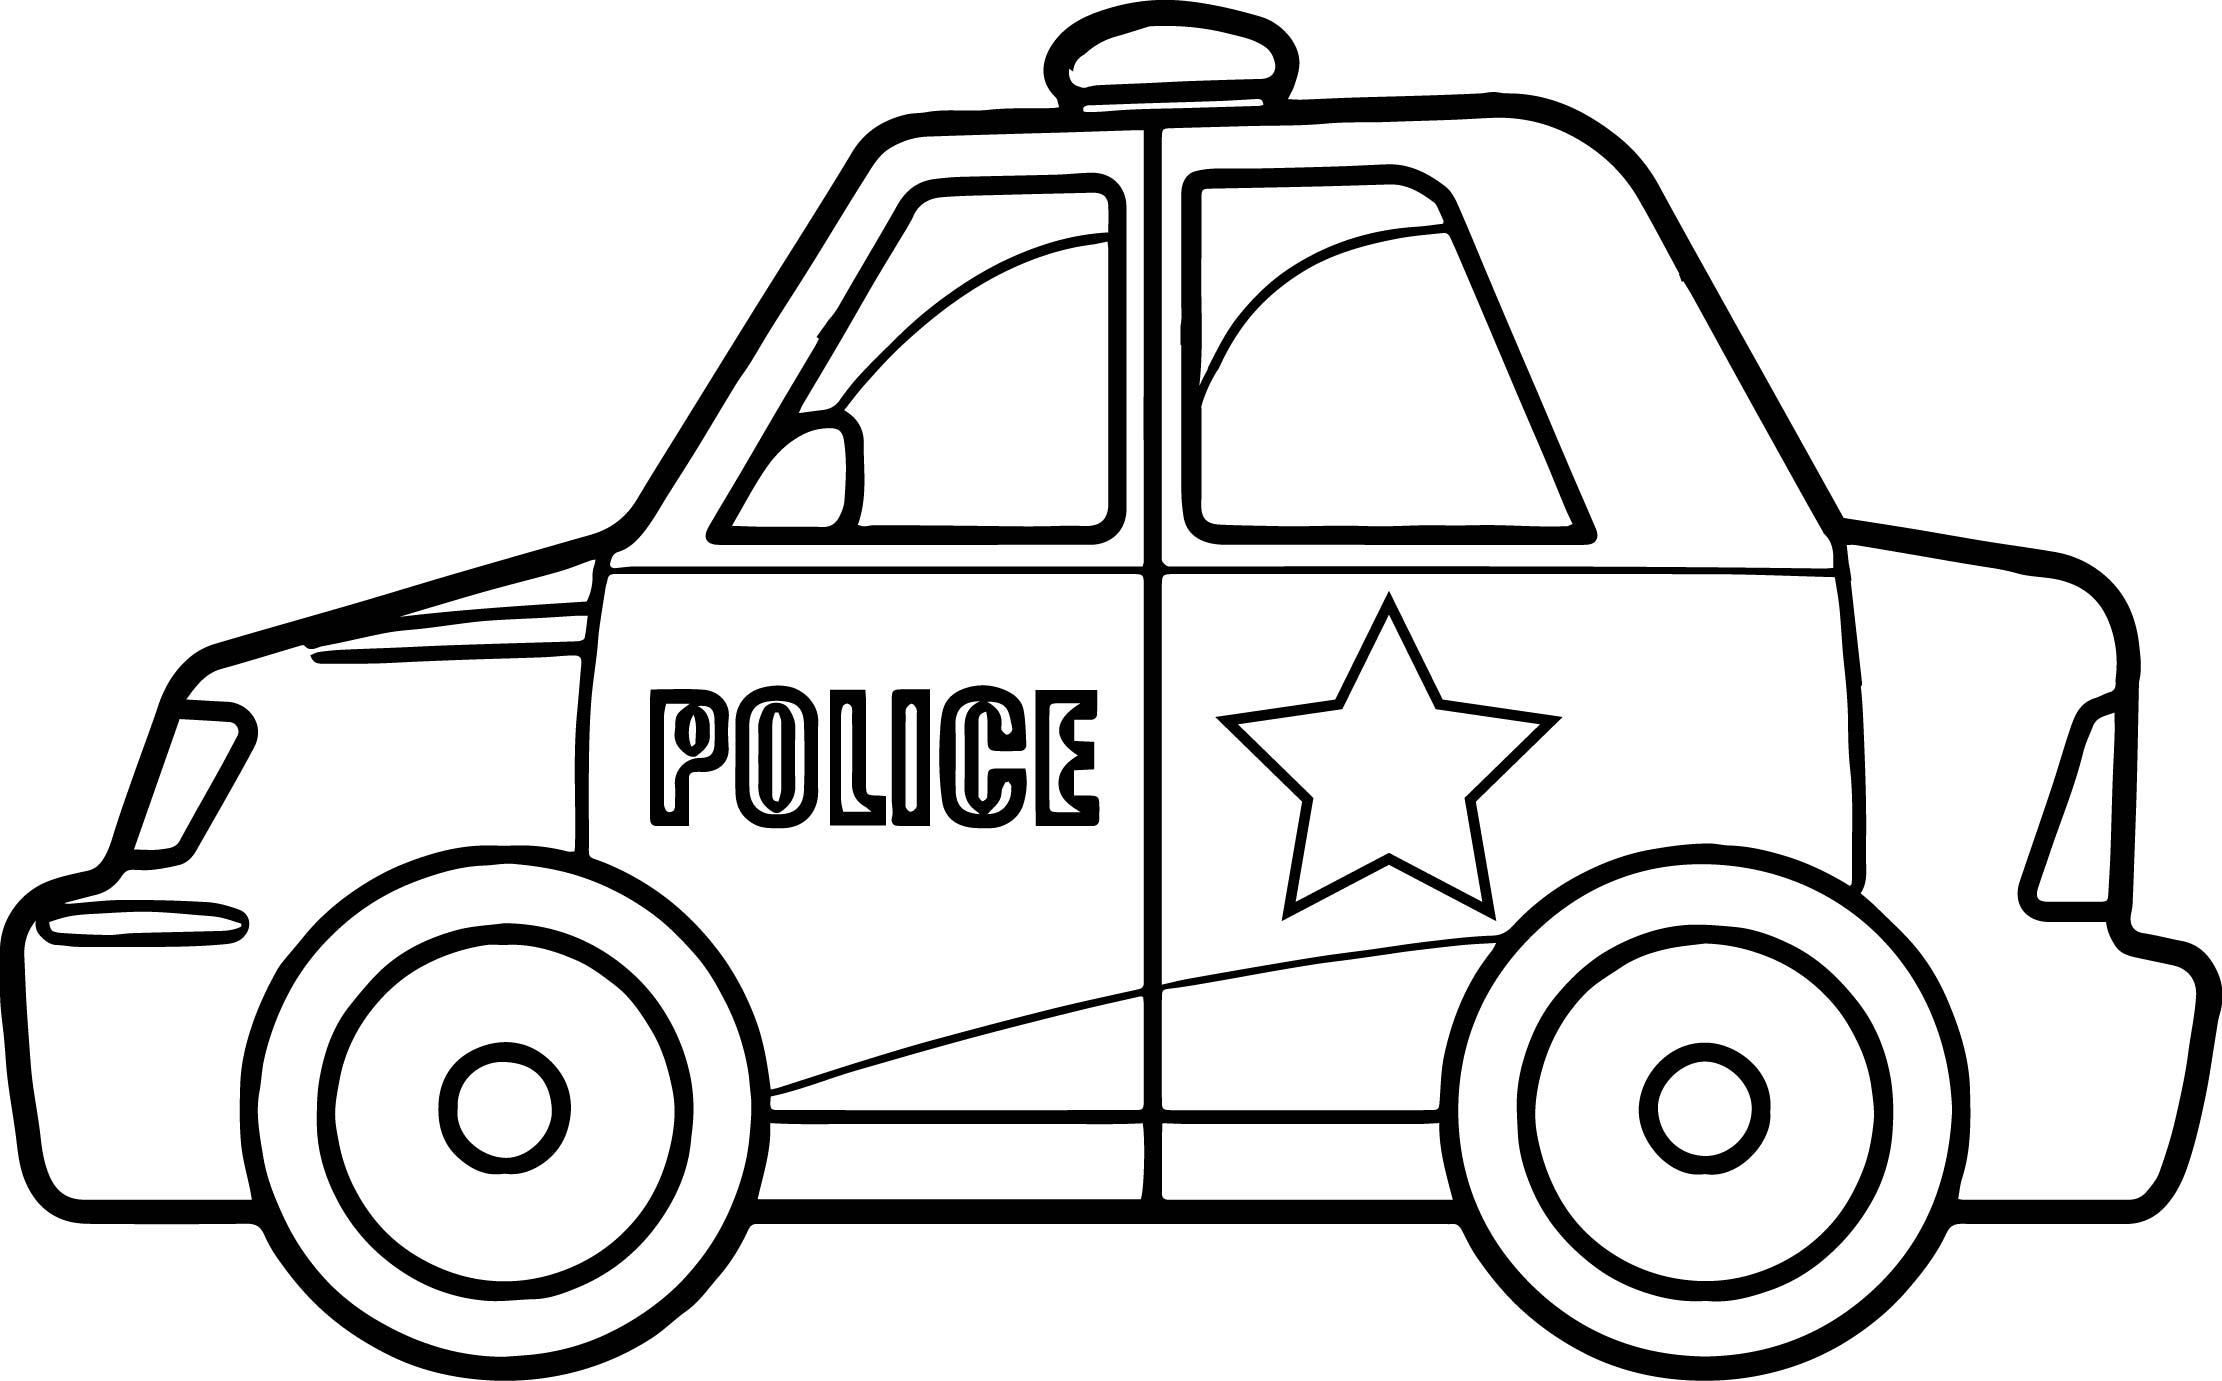 Police Car Coloring Pages Best Super Police Car Coloring Page  Wecoloringpage Design Decoration